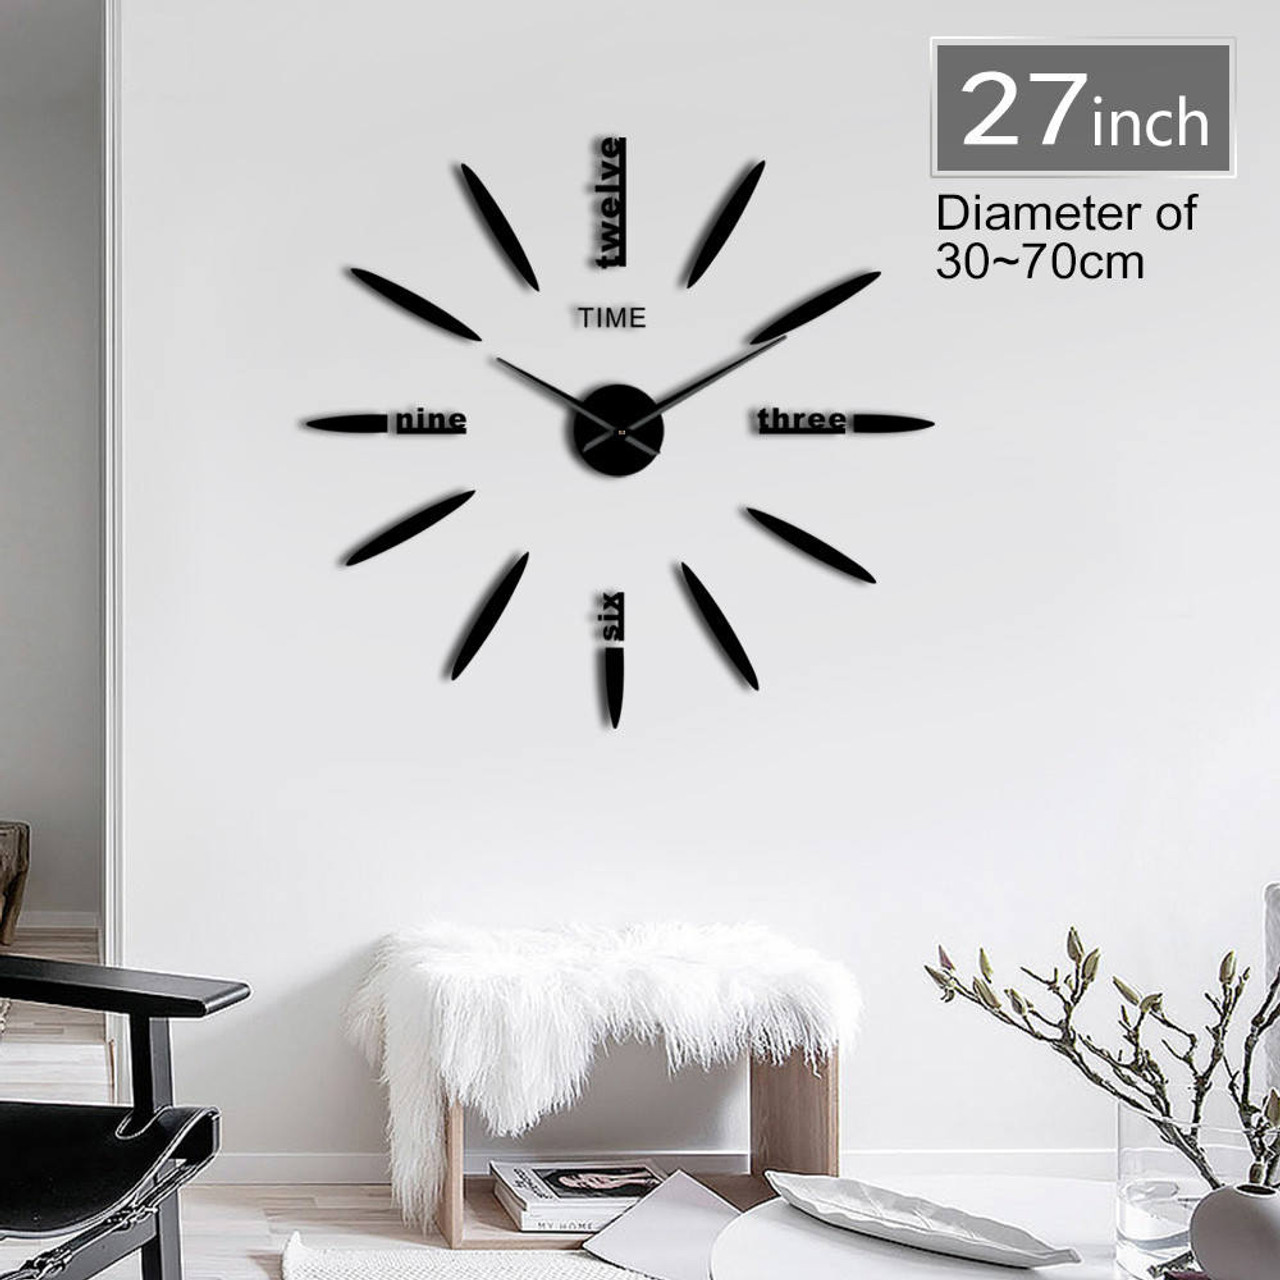 Simple Modern Giant Big DIY Large Frameless Wall Clock with Mirror Effect Decor